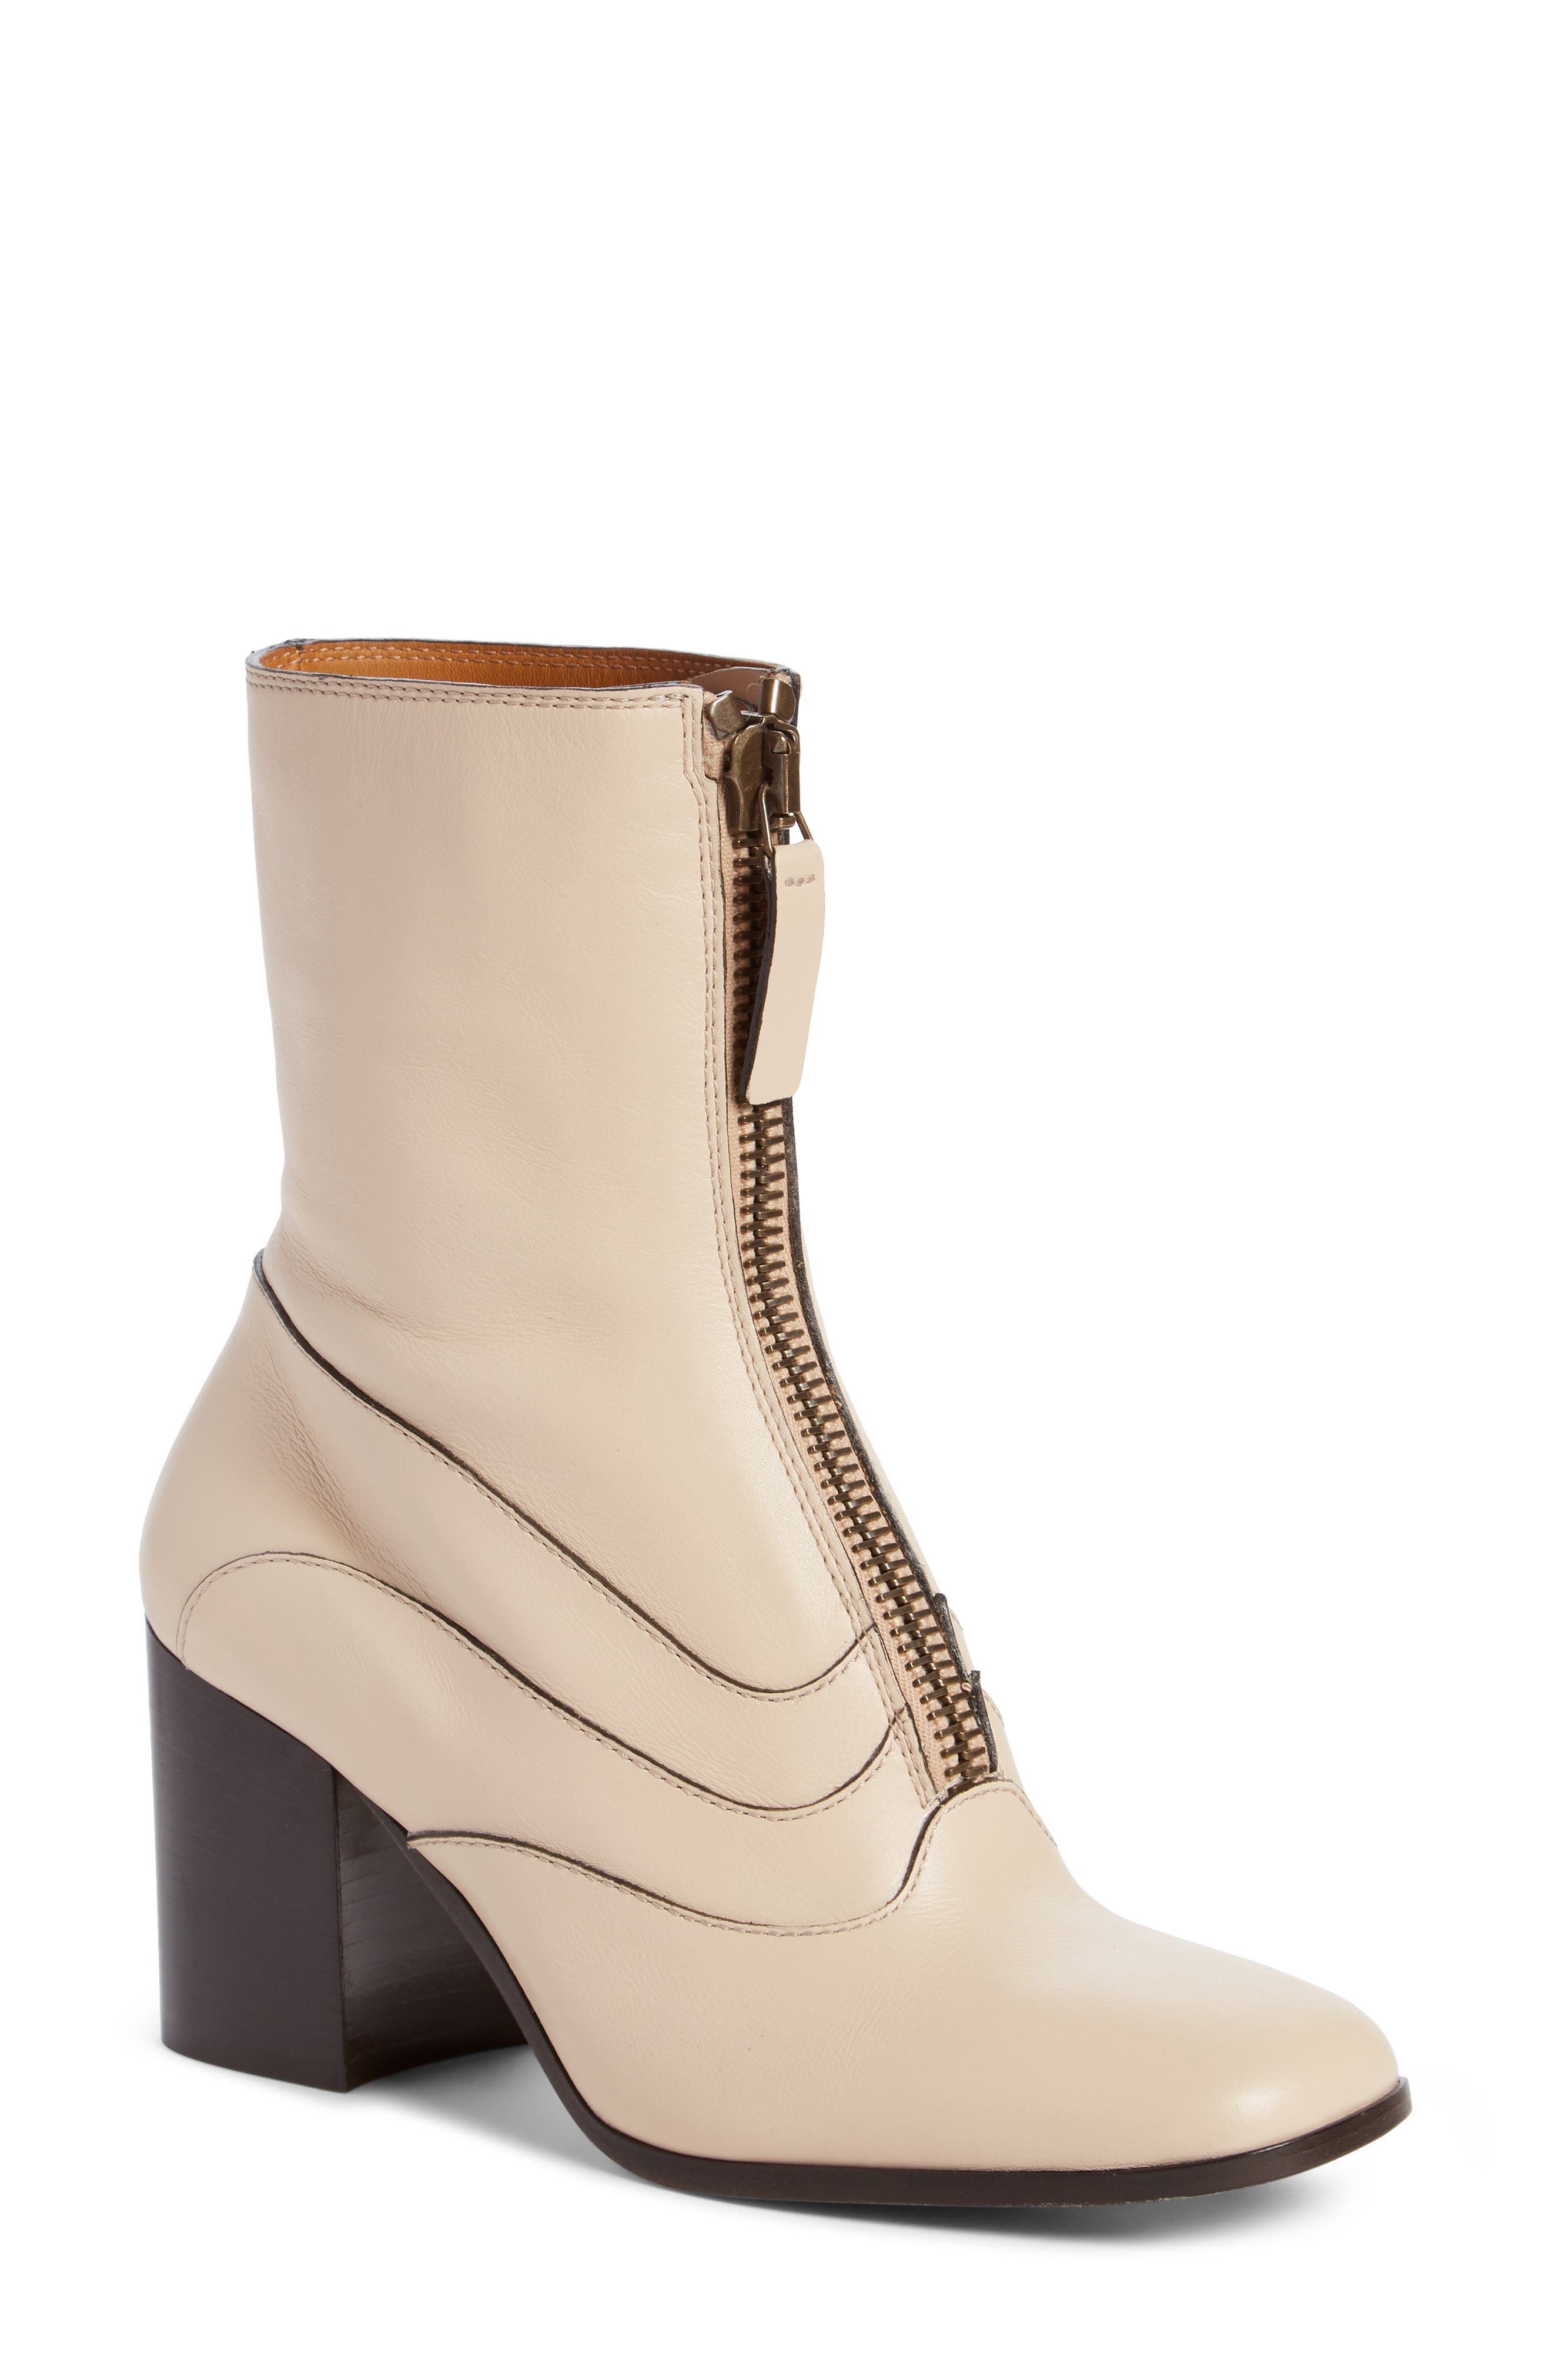 Alternate Image 1 Selected - Chloé Qacey Square Toe Boot (Women)